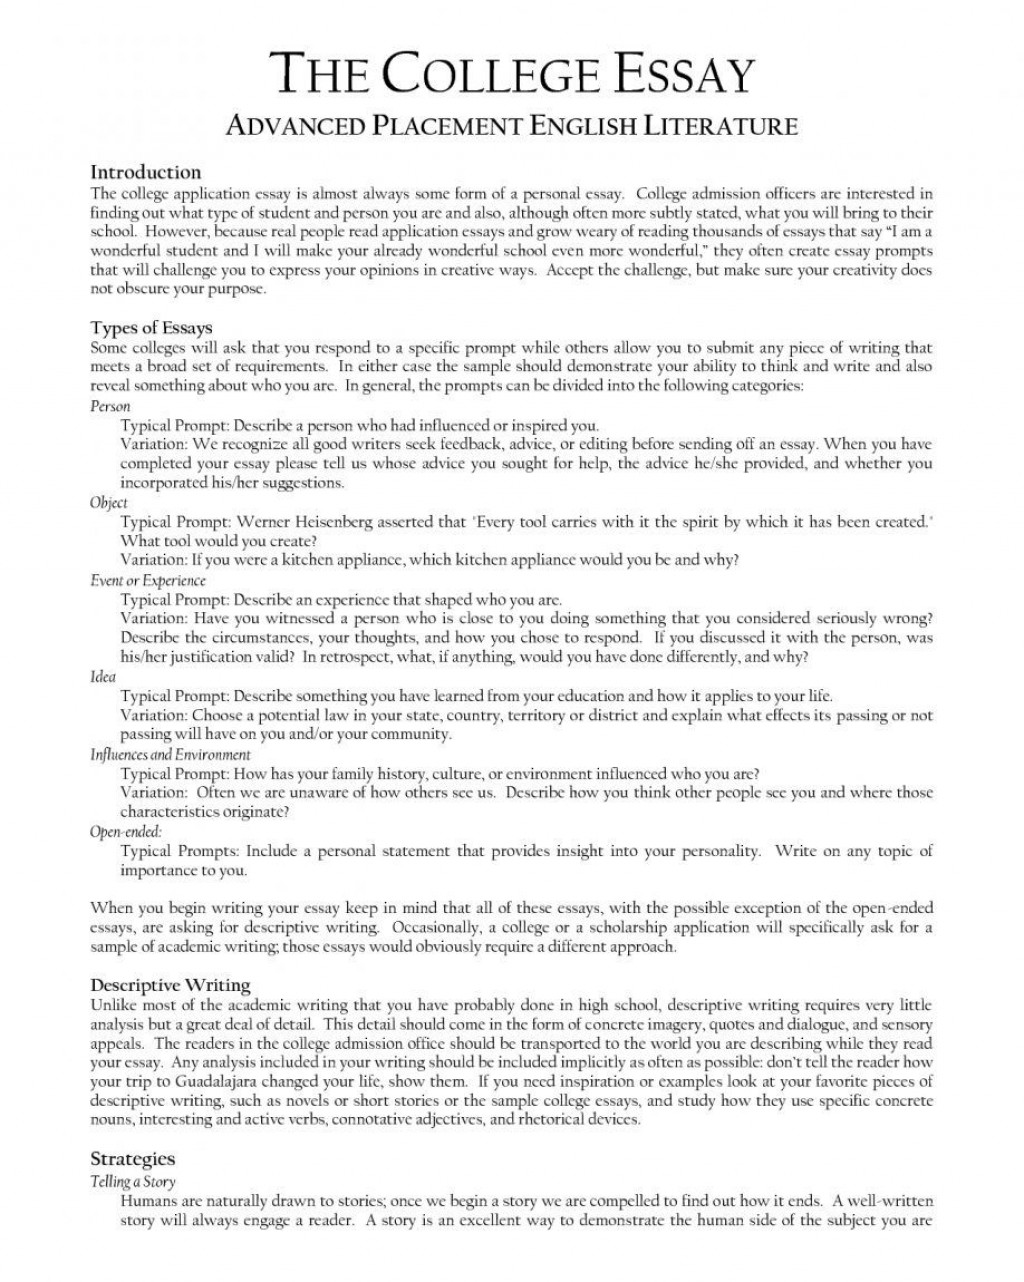 005 Sample Literature Essay Outline Character Analysis Withs Regarding Of Wr College Wondrous Introduction Lord The Flies Plans Sketch Rubric Large